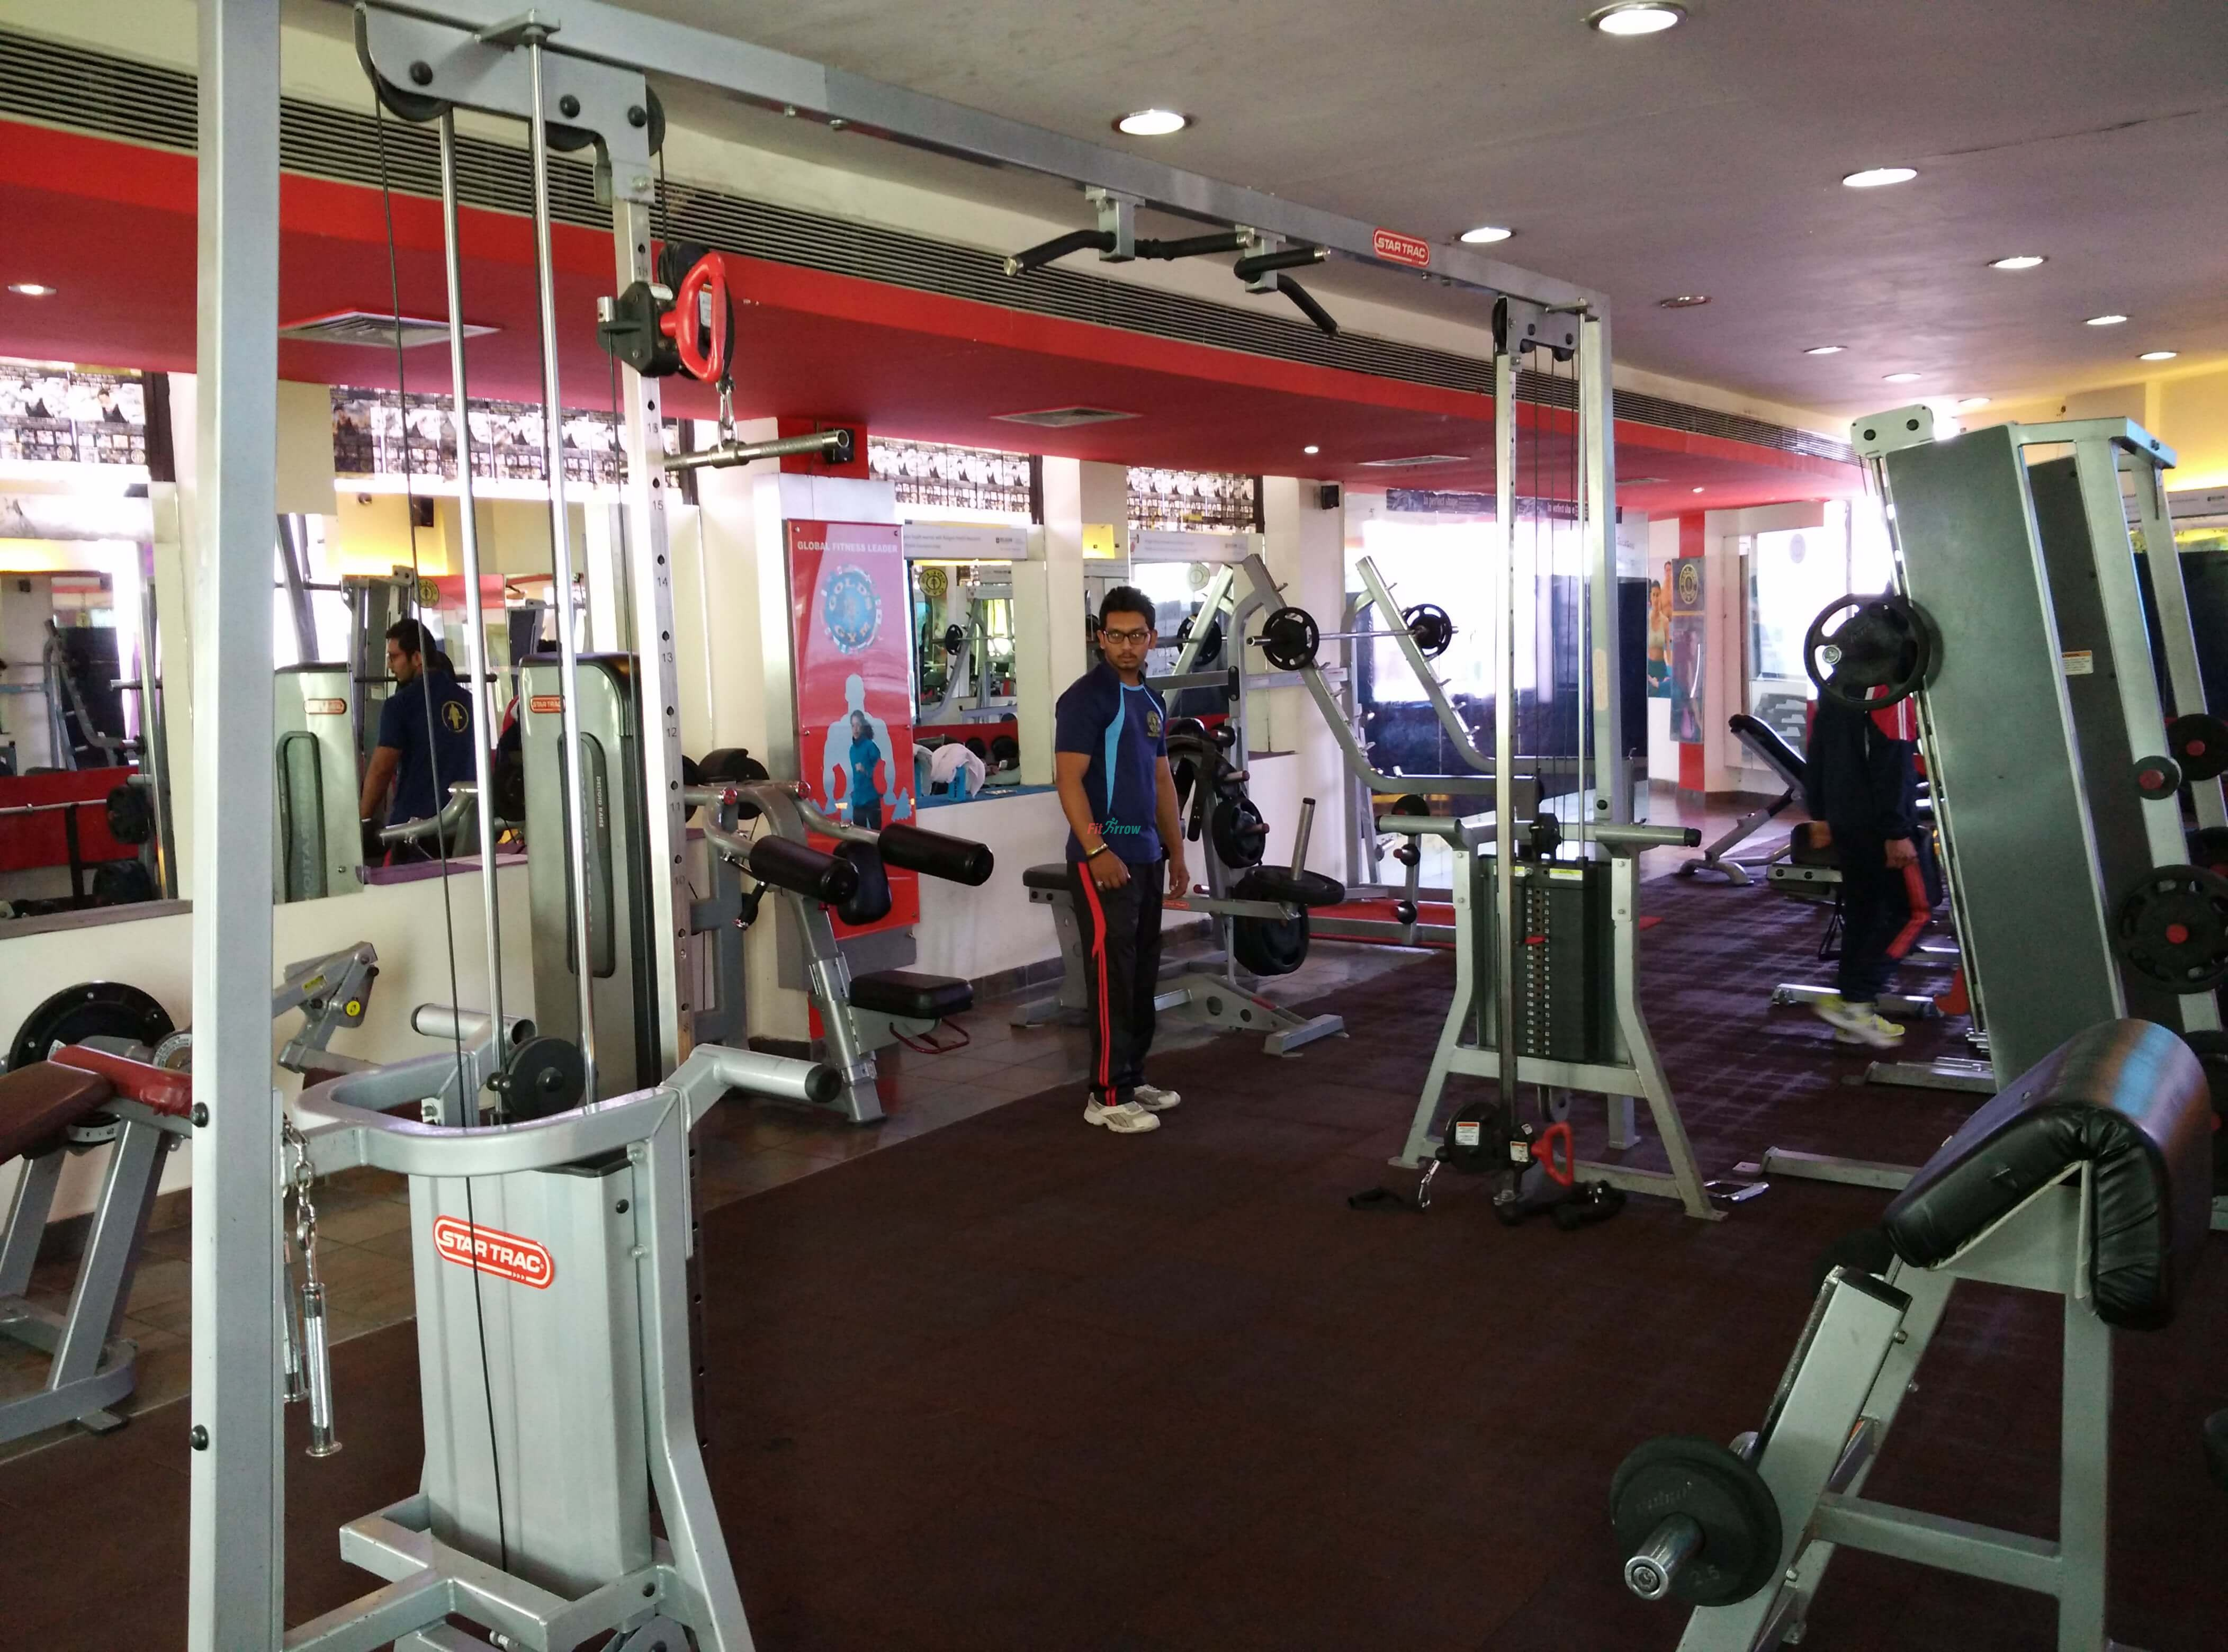 GOLD'S GYM - PALM VIHAR - GURGAON Photos, Images and ...